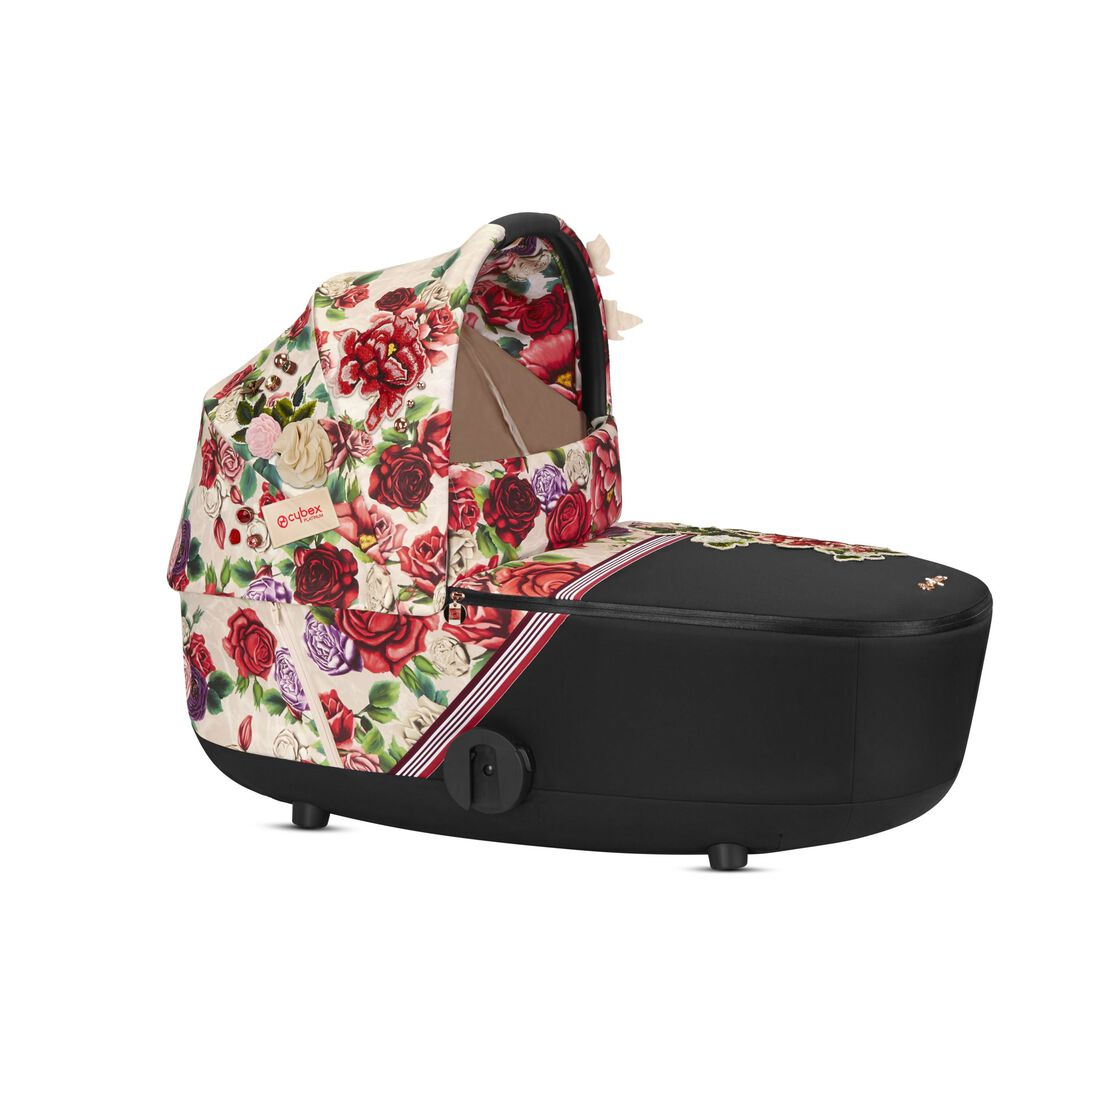 CYBEX Mios Lux Carry Cot - Spring Blossom Light in Spring Blossom Light large image number 1